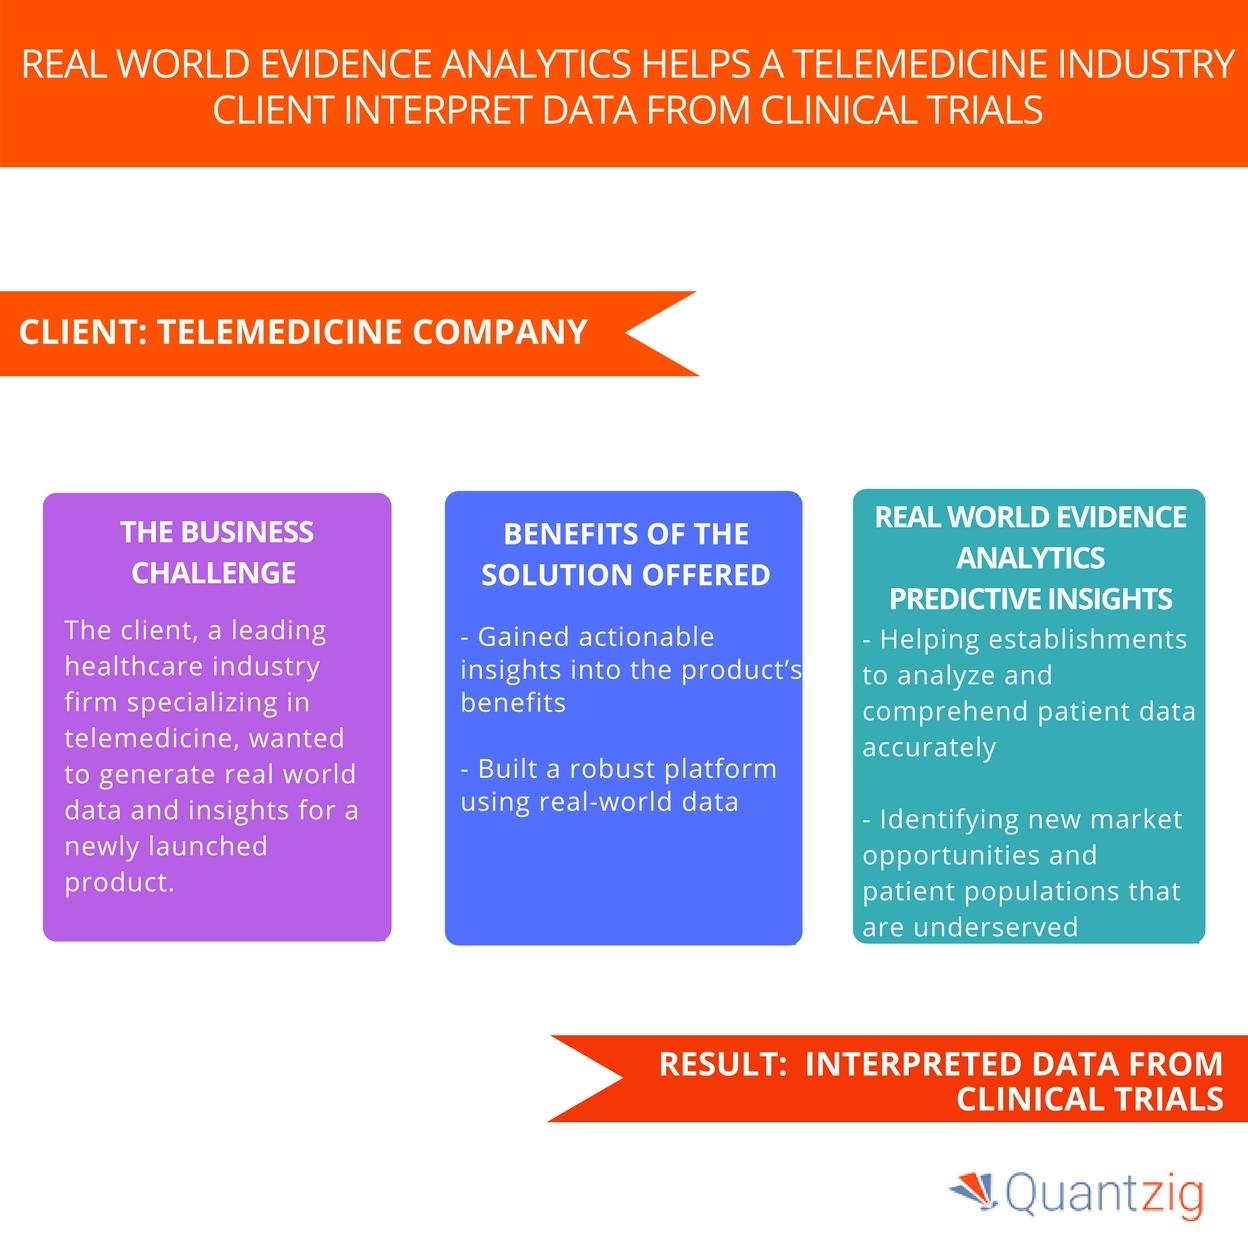 Quantzig's Real-World Evidence Analytics Study on the